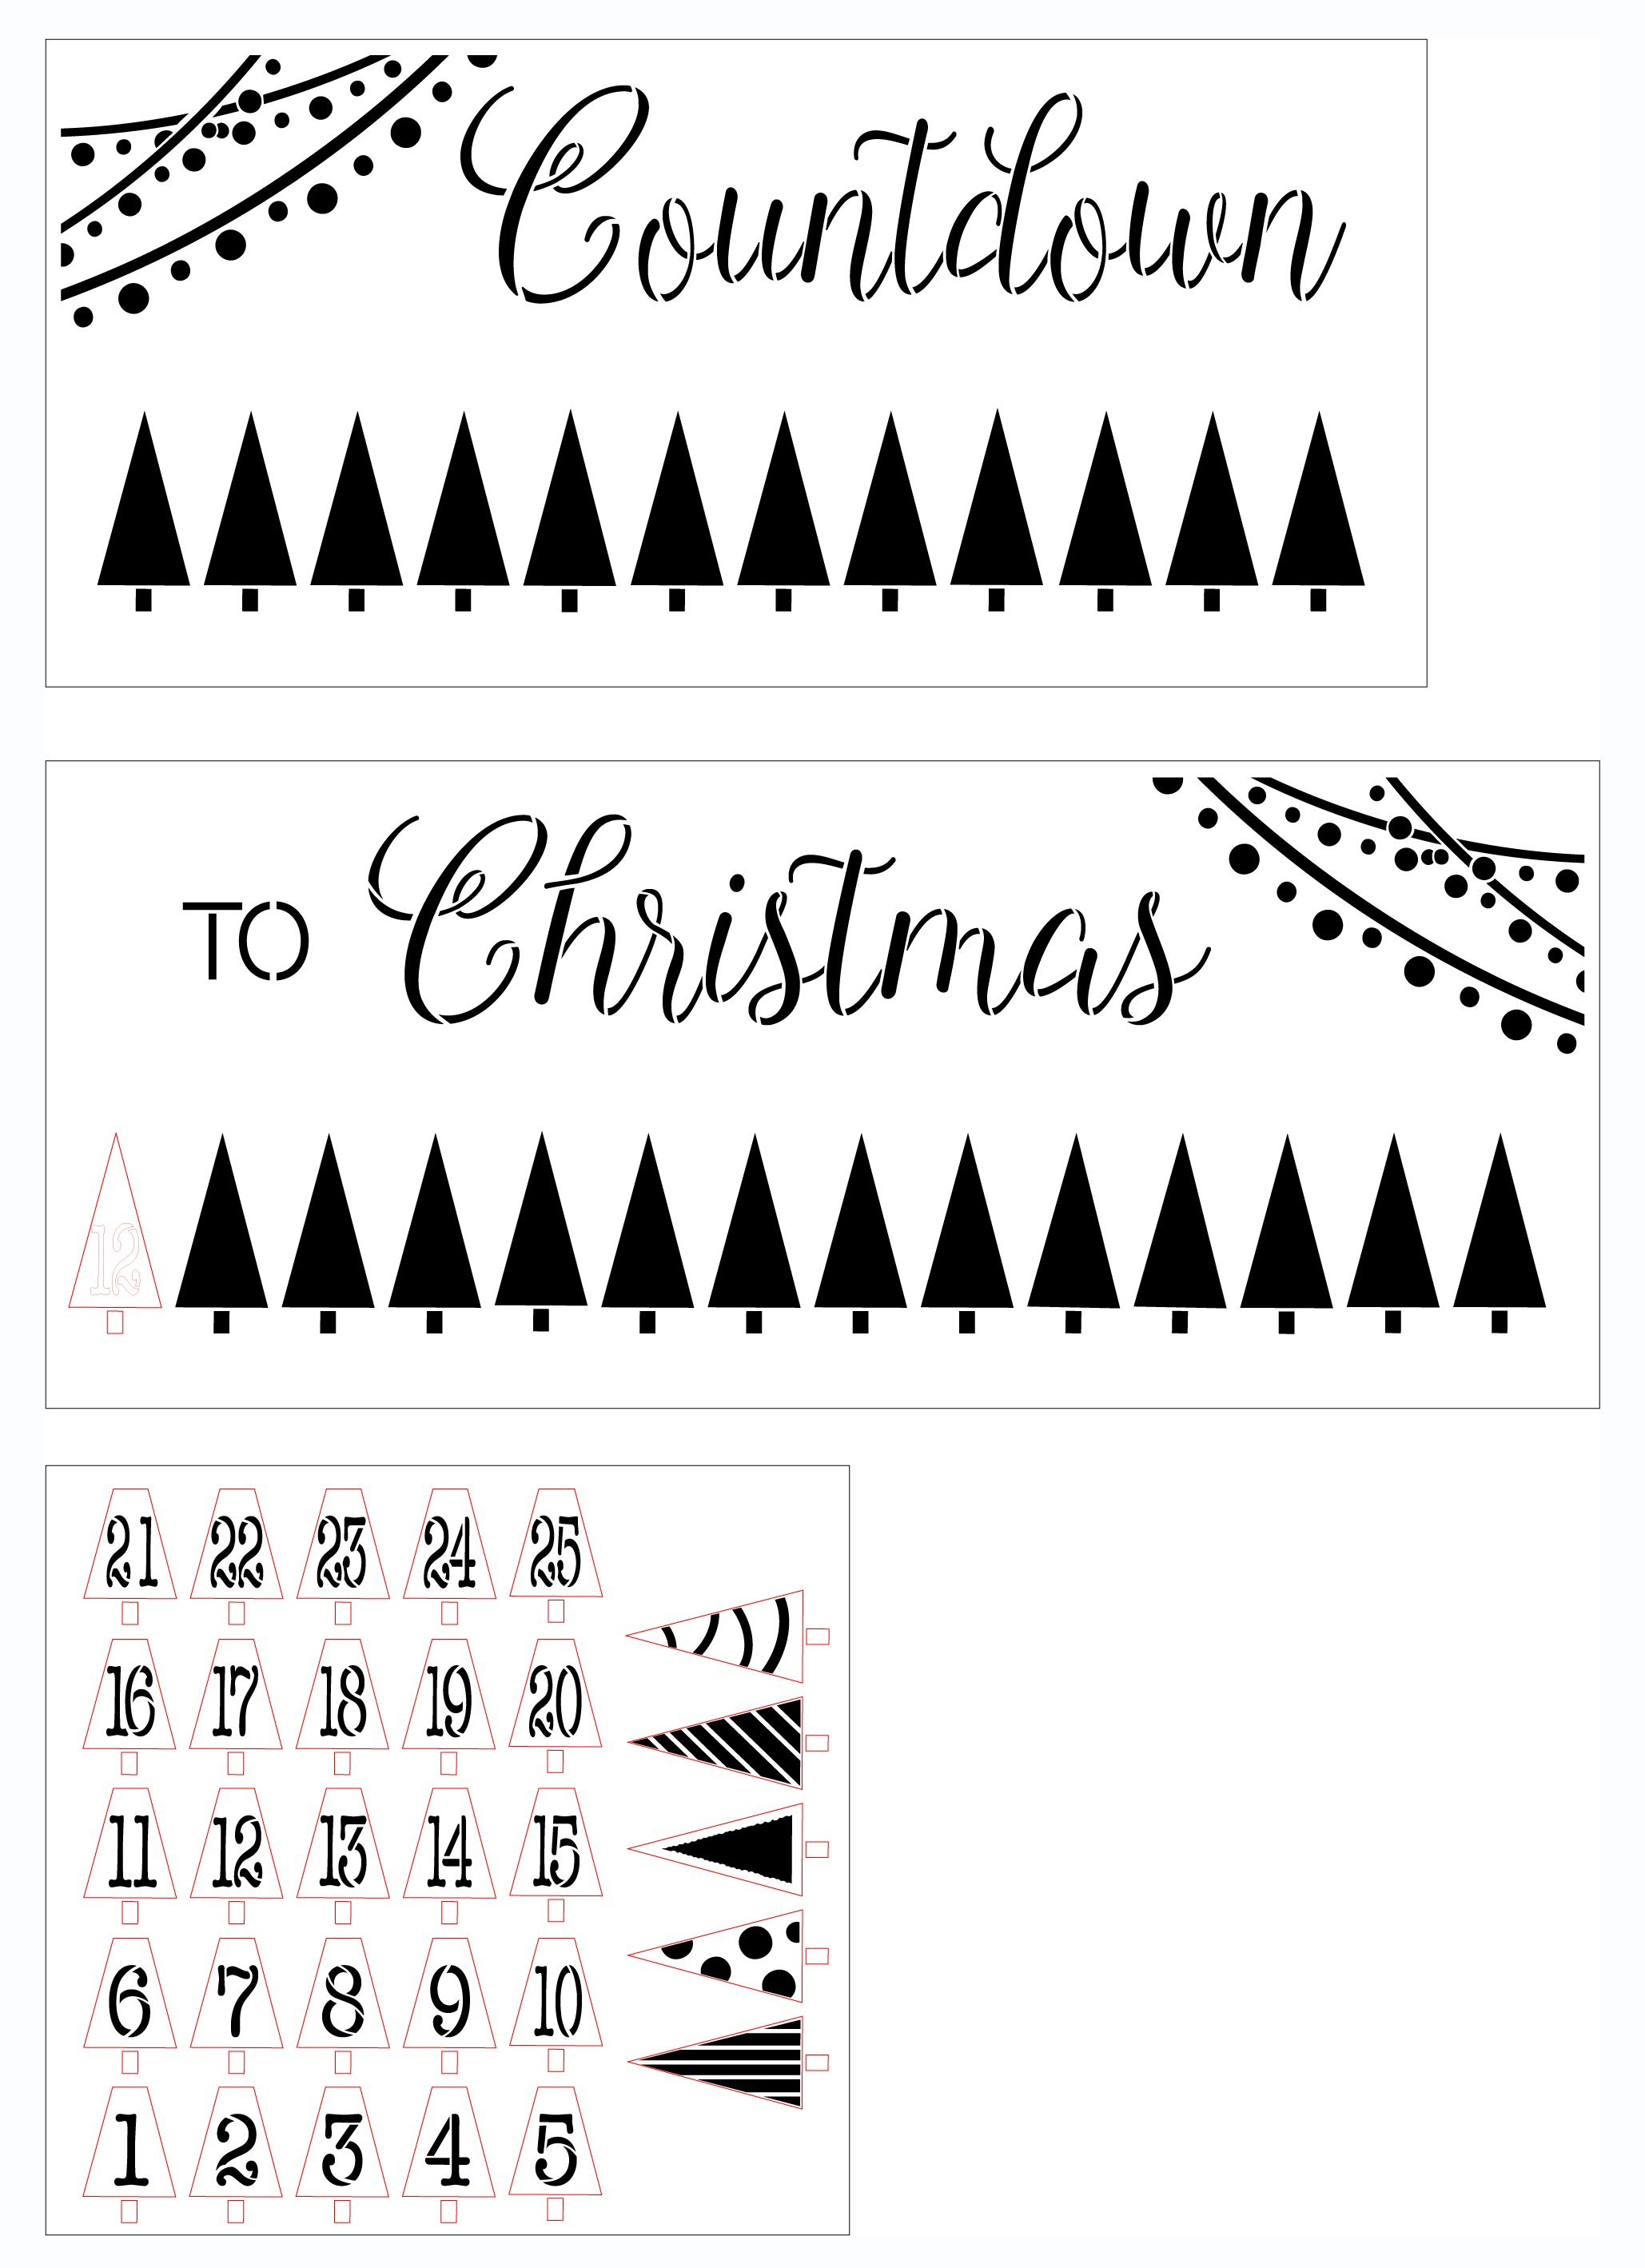 Countdown to Christmas 3-Part Stencil by StudioR12   Tree Lights Numbers   Craft DIY Winter Holiday Home Decor   Paint Wood Sign   Four FEET